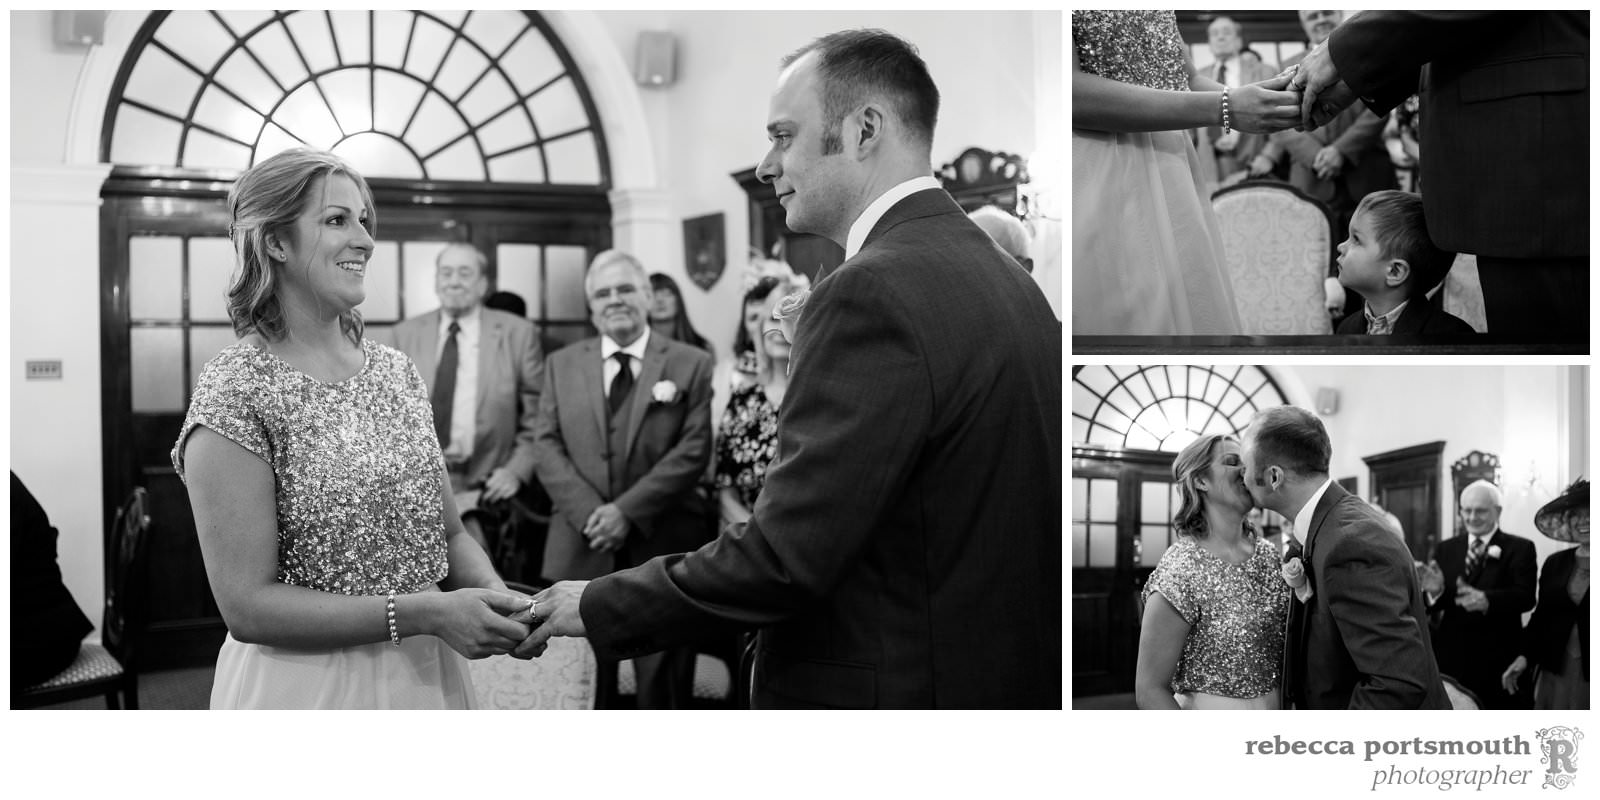 The Chelsea Registry Office wedding photos of Victoria + Dominic: - the moment they are pronounced man and wife!